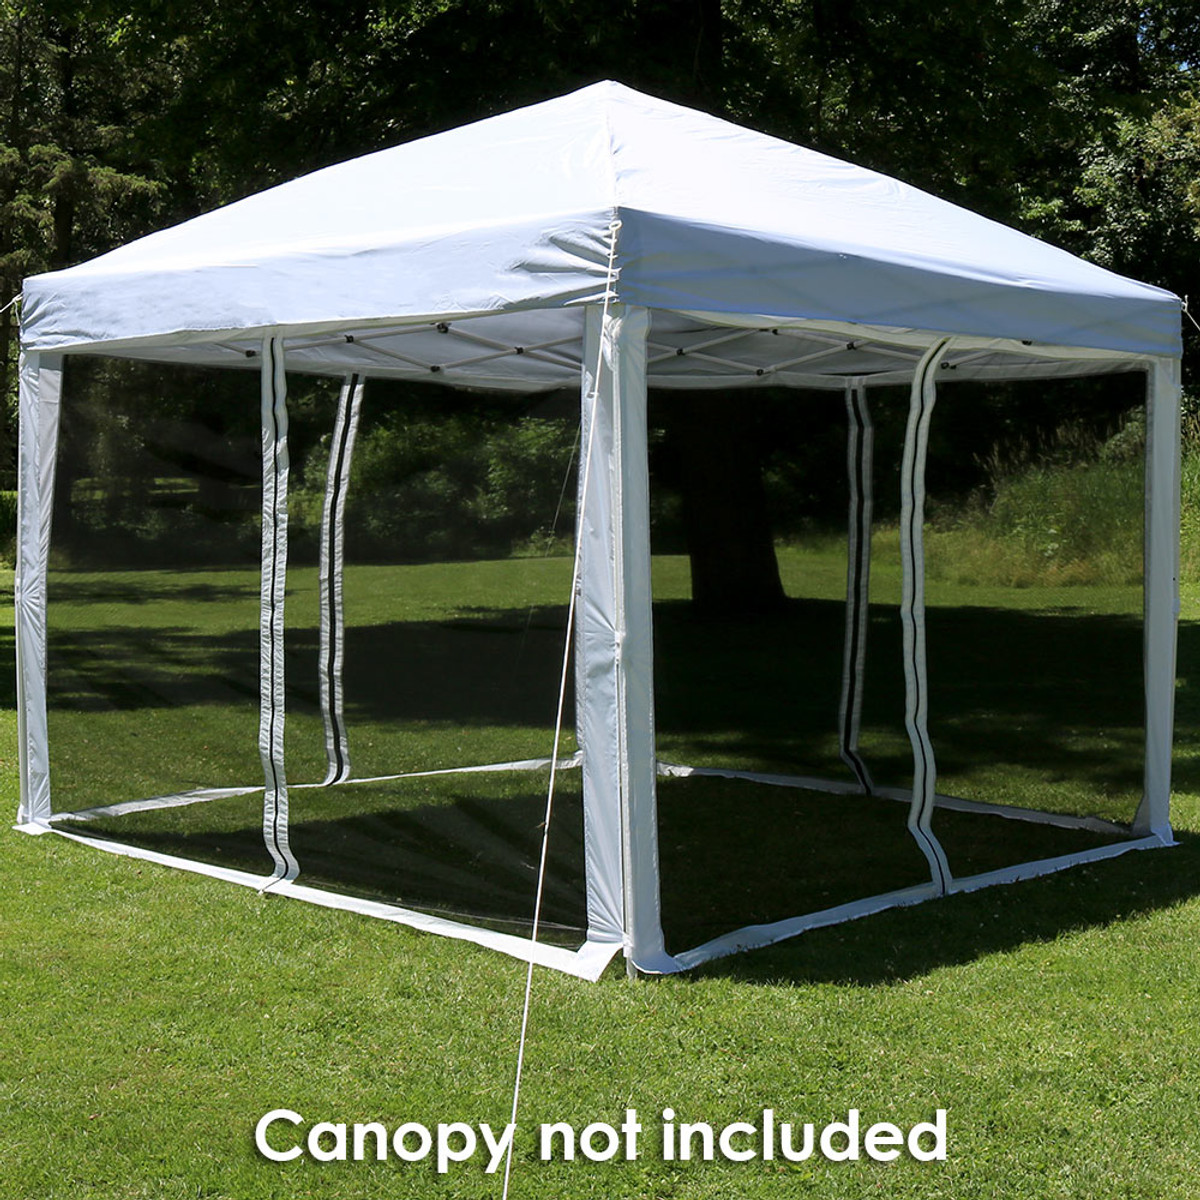 Zippered Mesh Sidewall Kits for Quick-Up Canopies